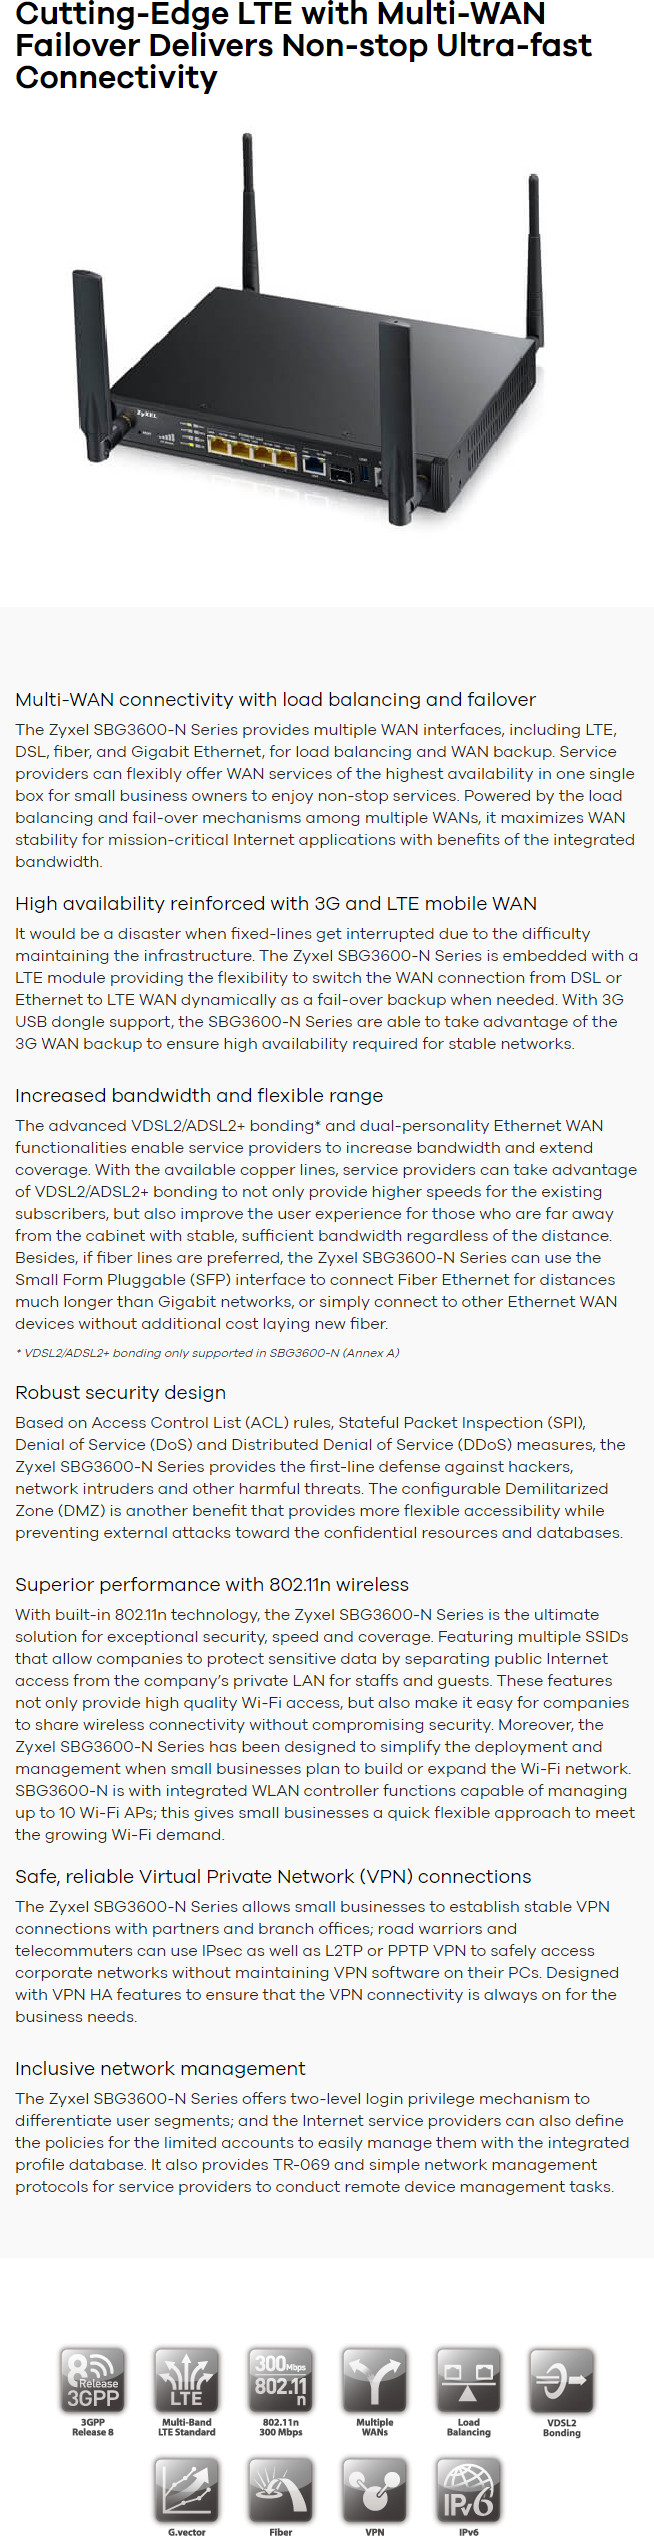 Zyxel SBG3600 LTE Multi-WAN Small Business Gateway